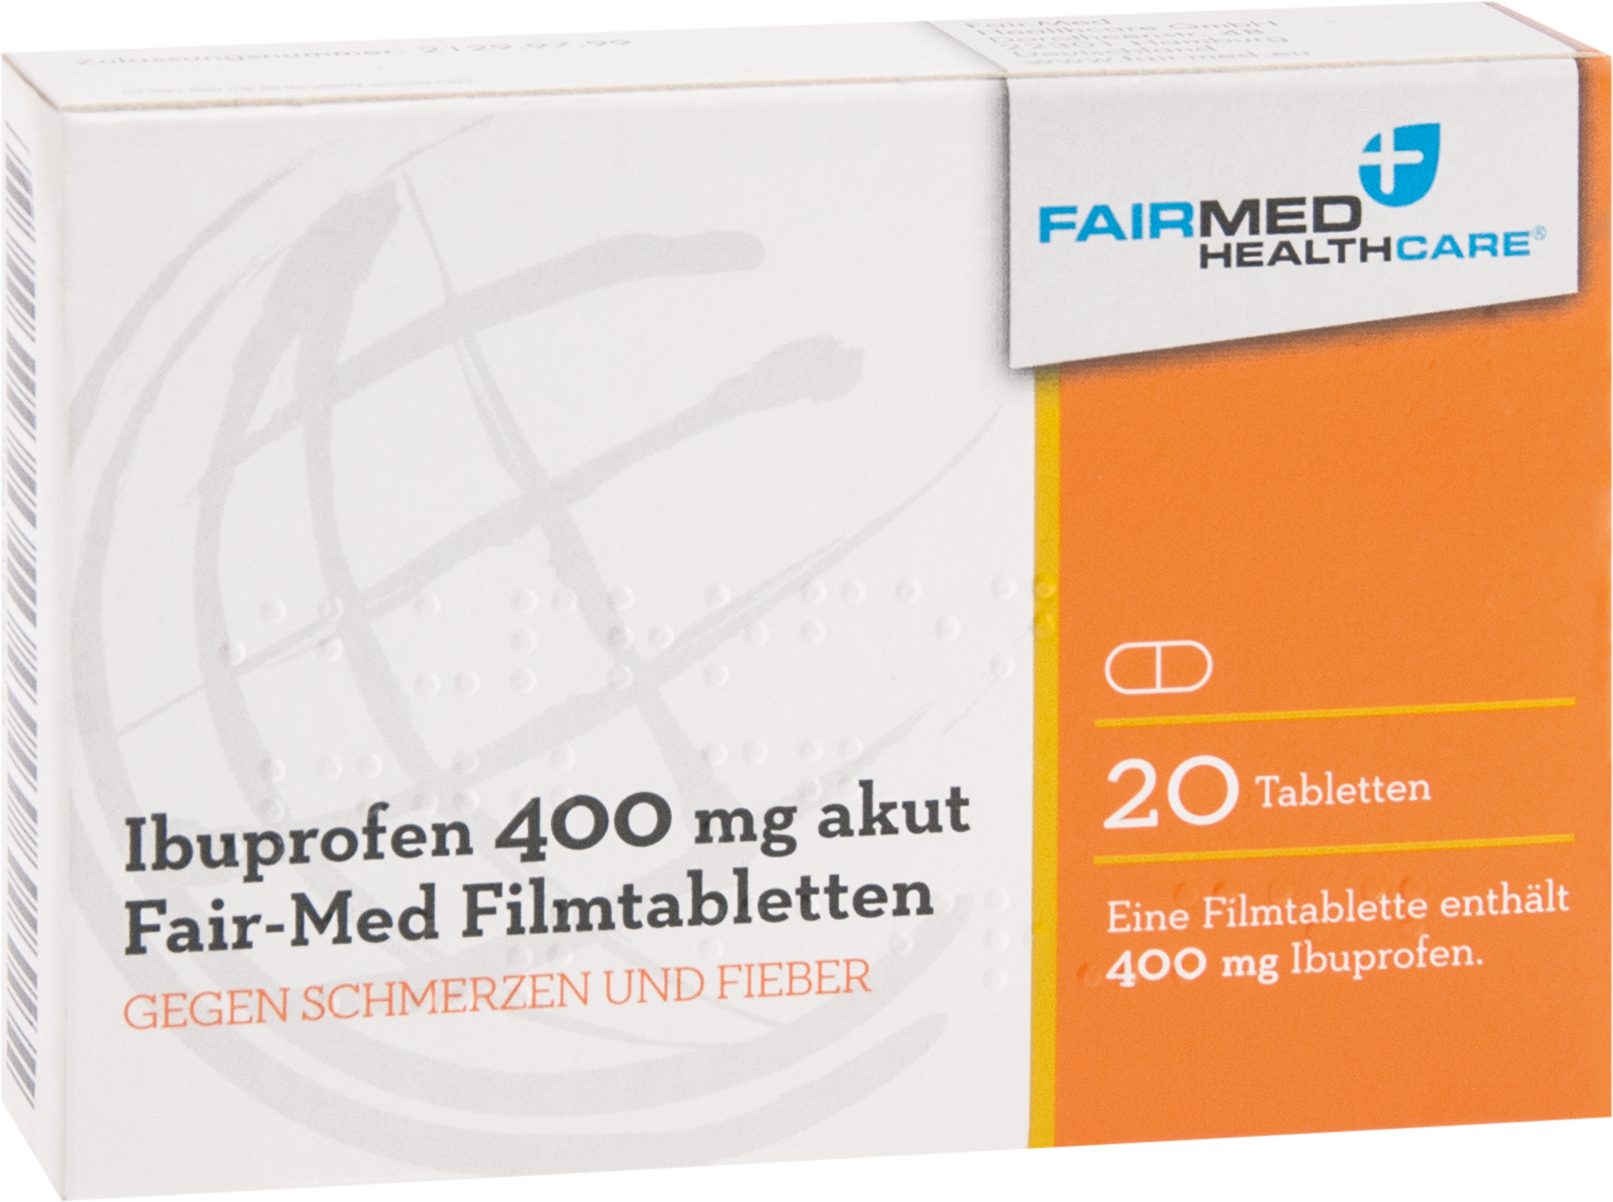 Ibuprofen 400mg akut Fair-Med Healthcare